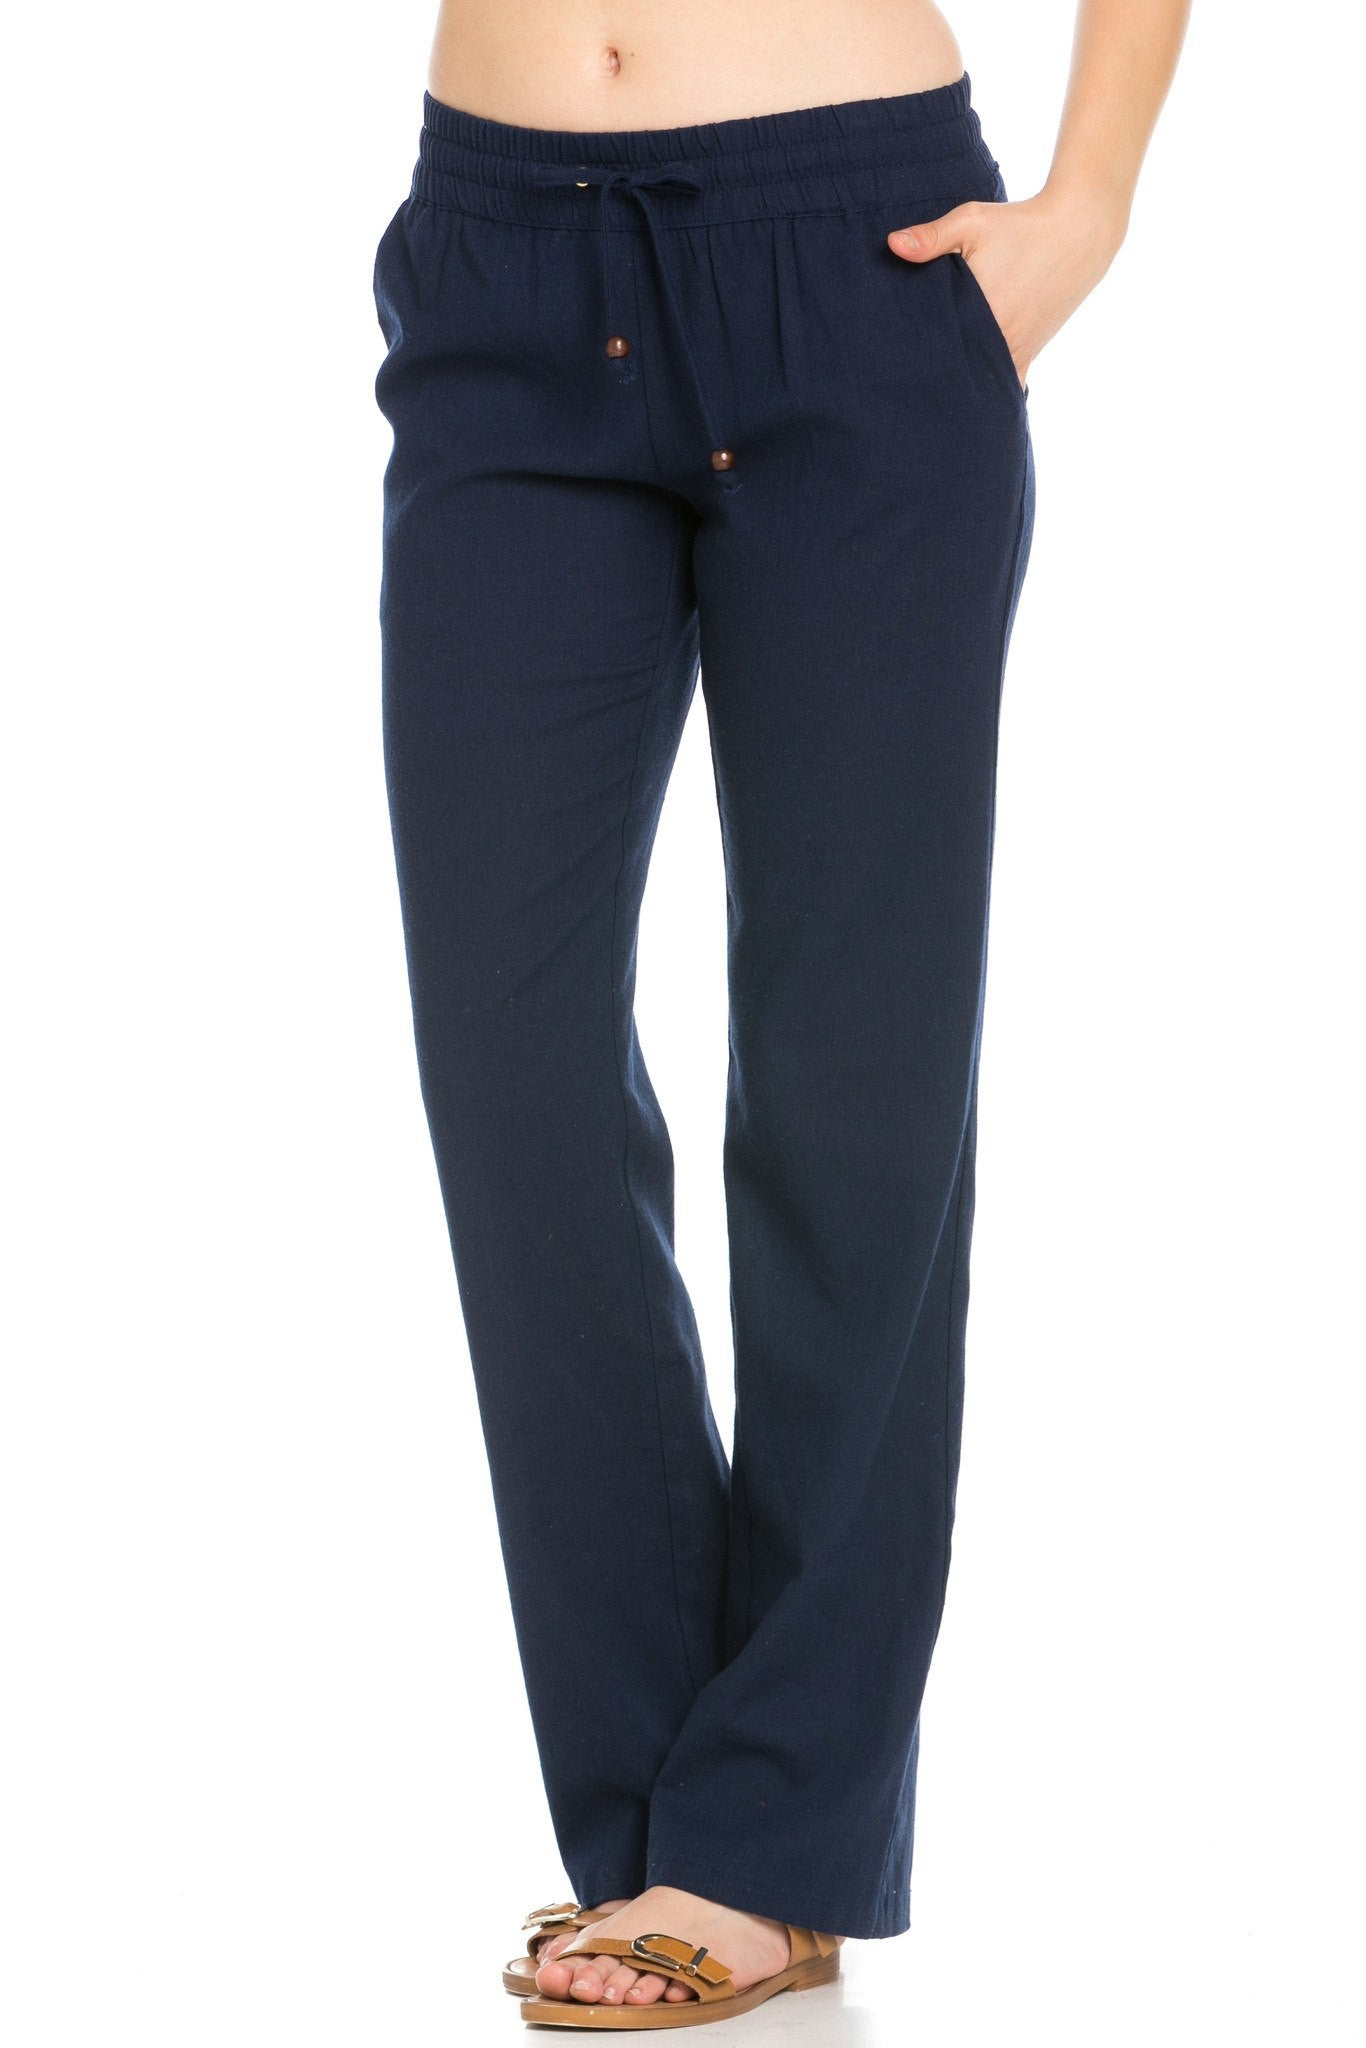 Comfy Drawstring Linen Pants Long with Band Waist (Navy) - Poplooks